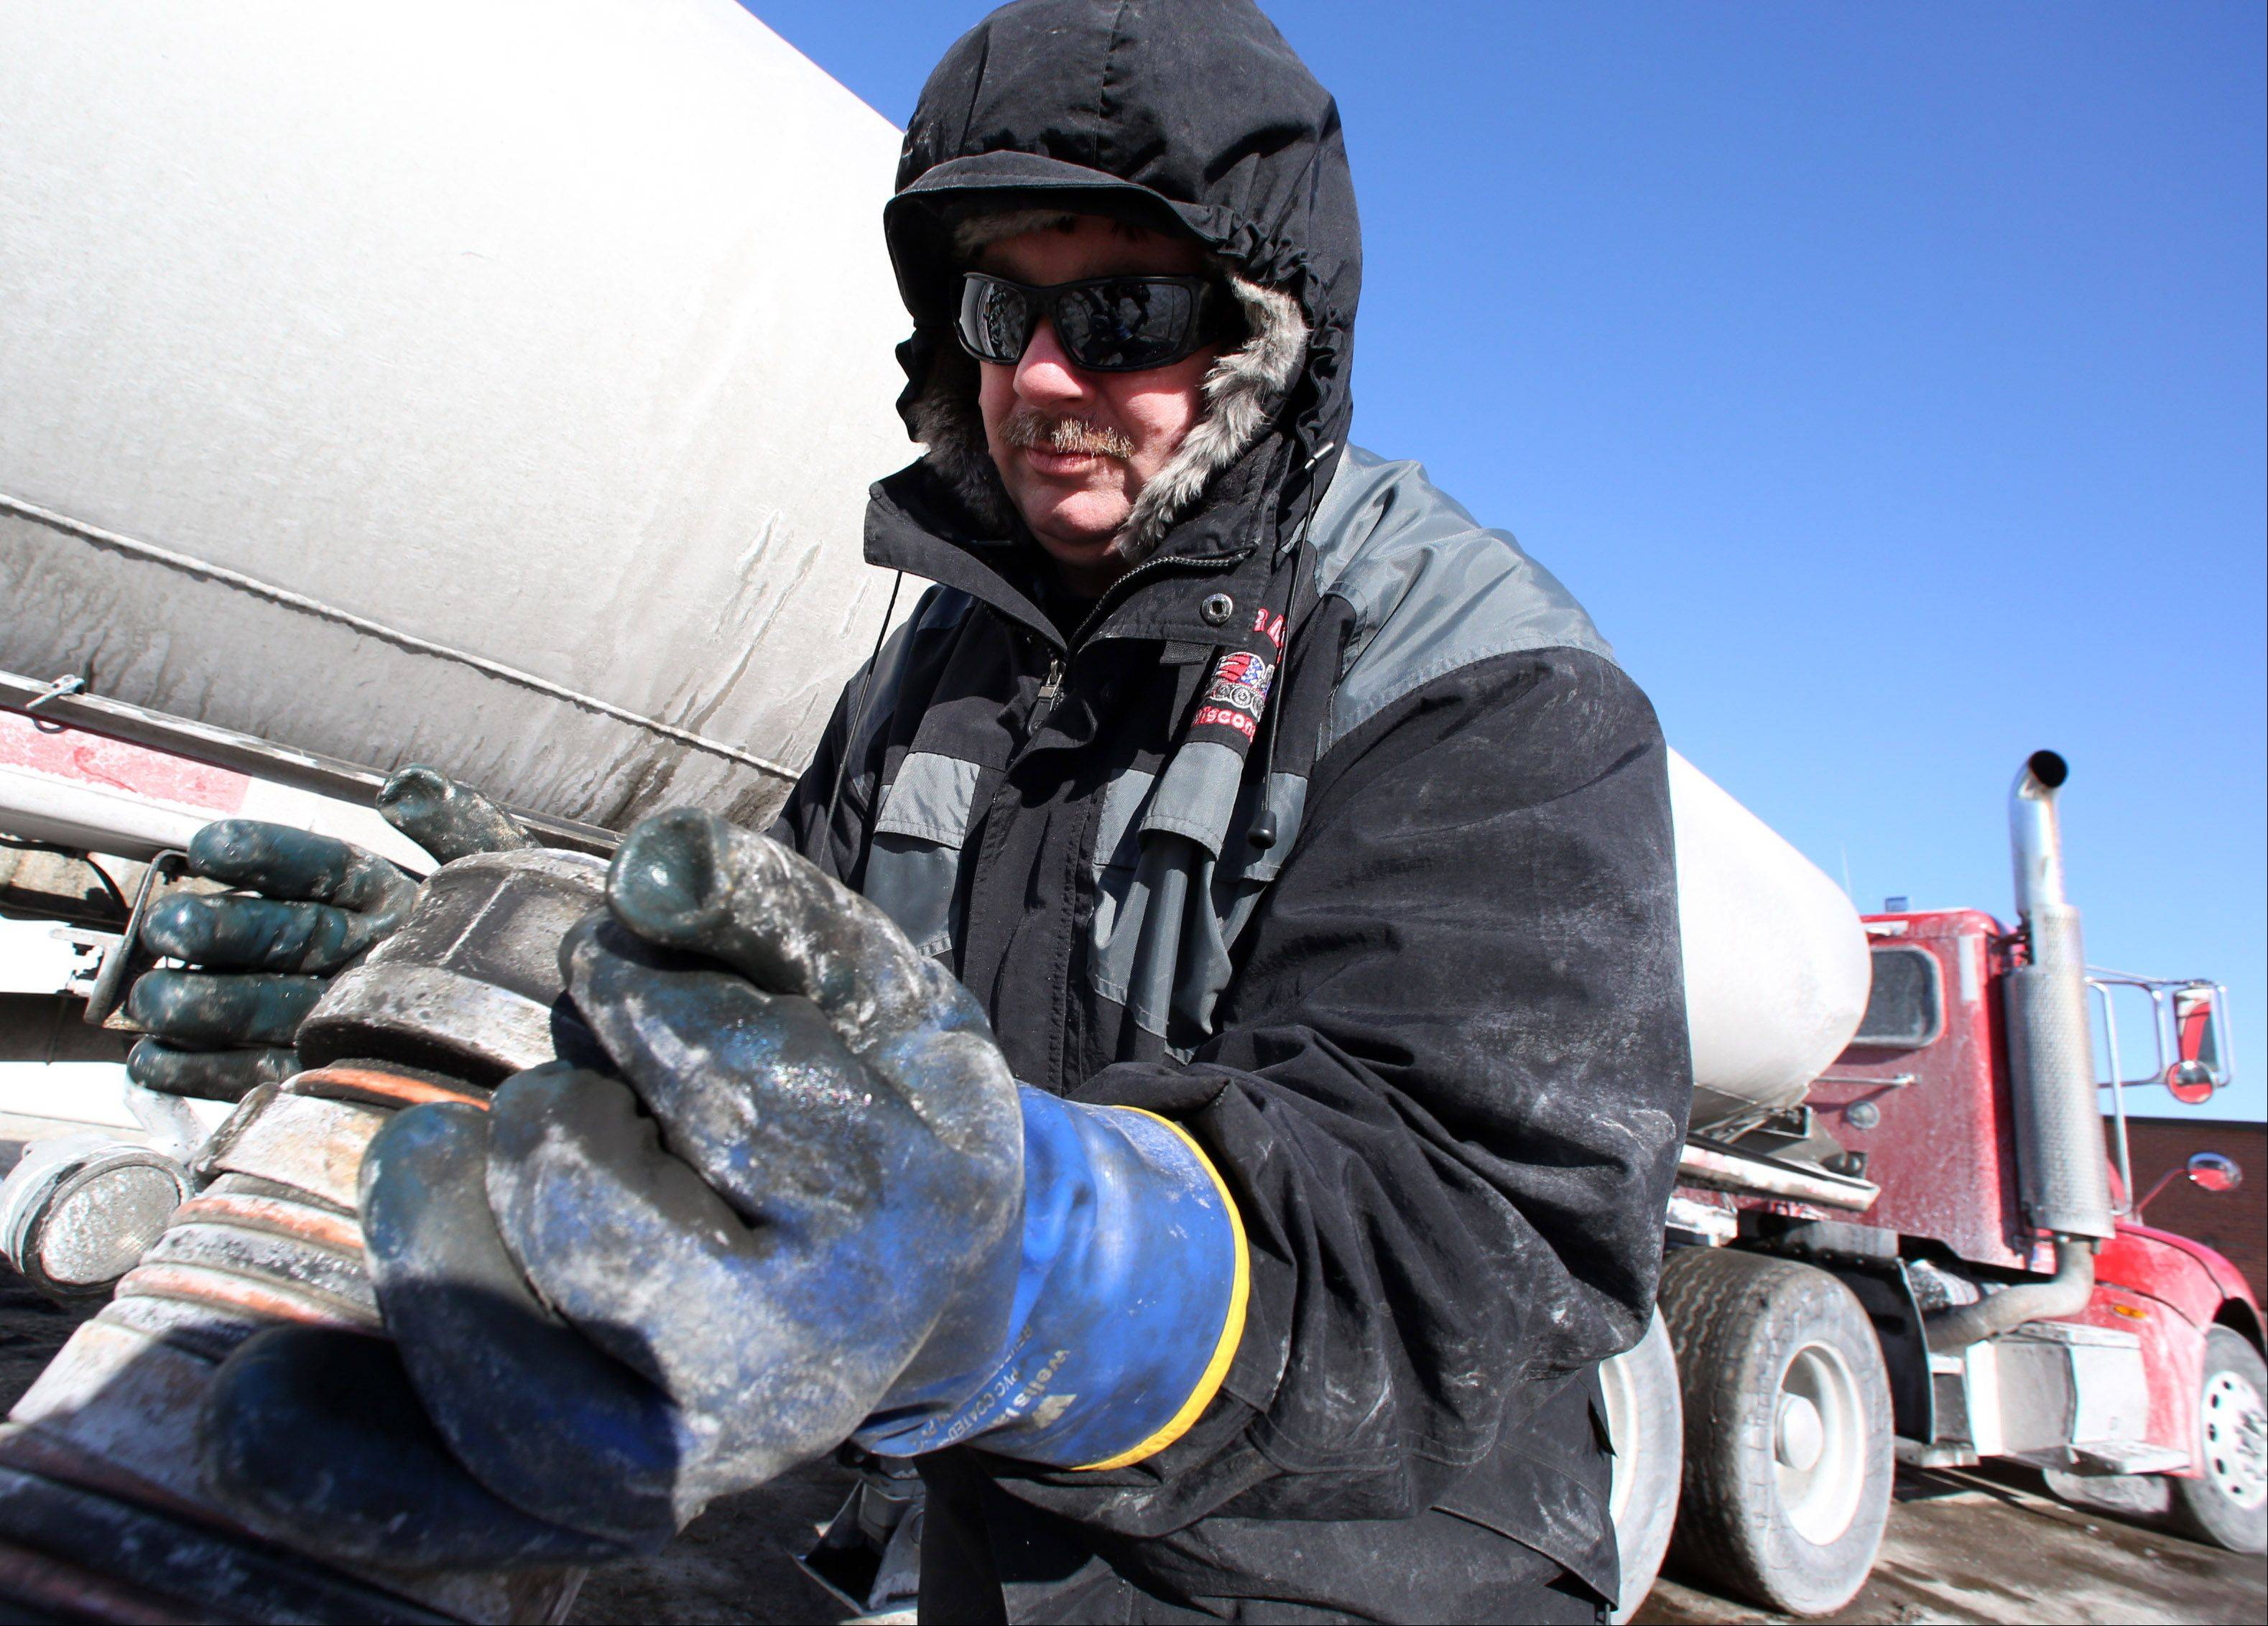 Rob Szymkowski, with Burke Transport Service in Libertyville, places a gas line hose back on to his truck after delivering diesel fuel to IDOT in Arlington Heights.